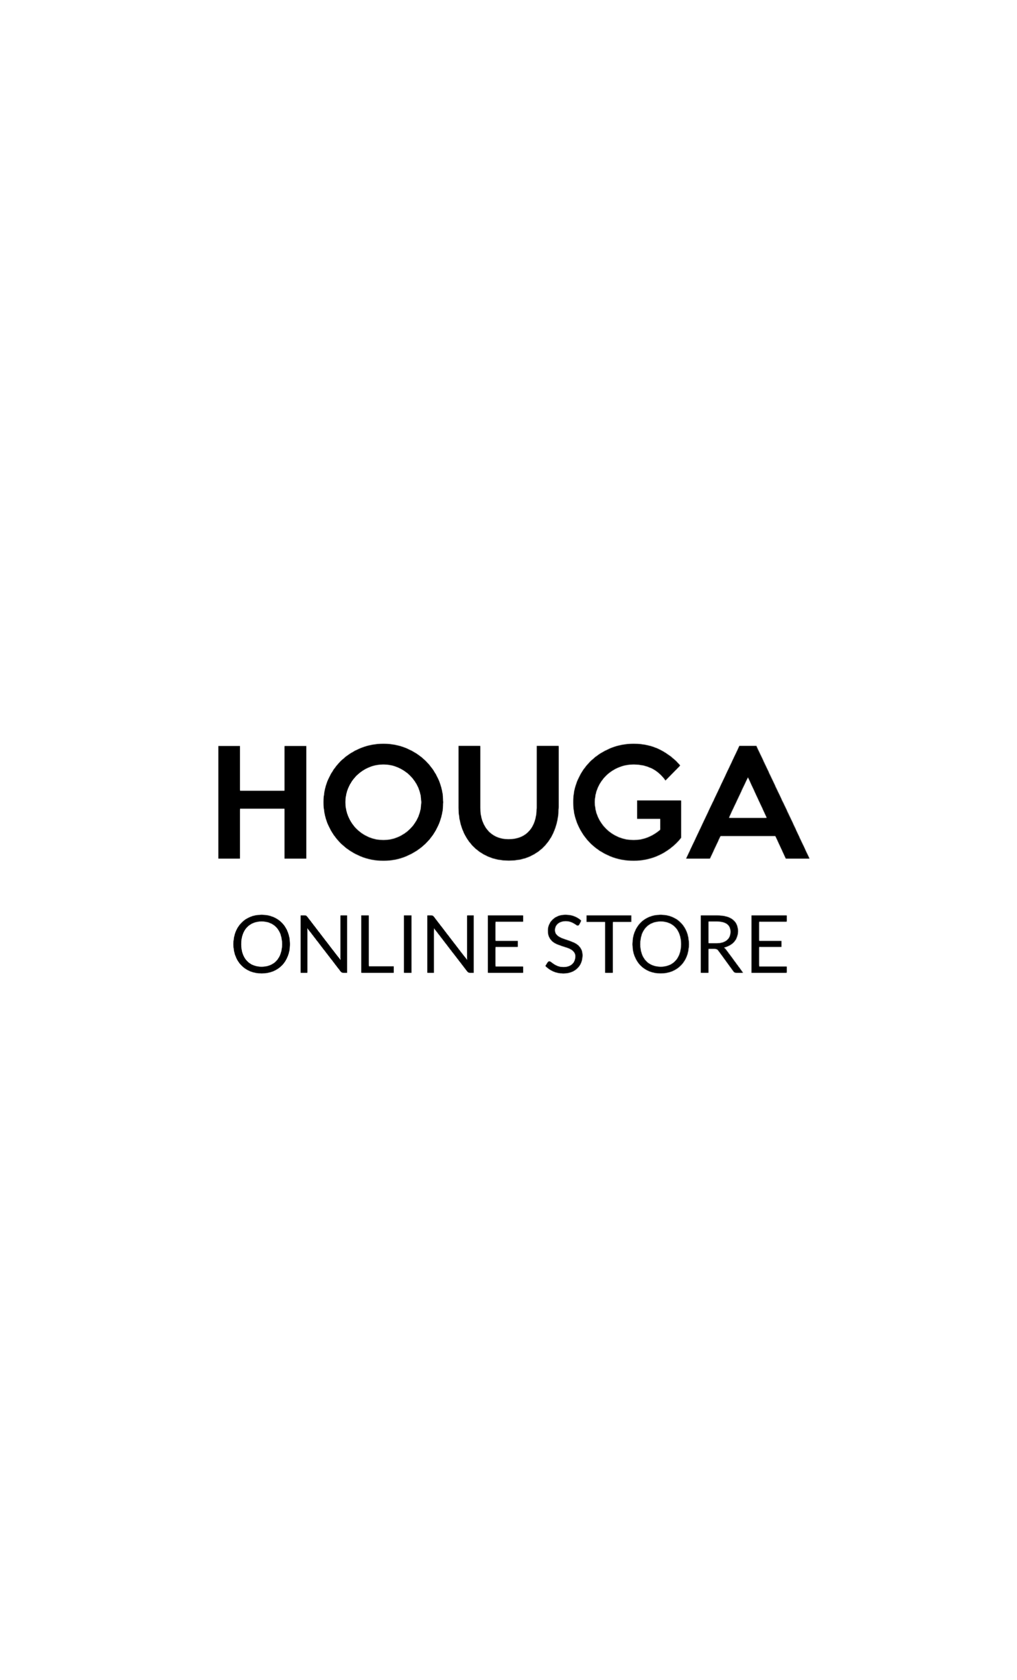 HOUGA ONLINE STORE